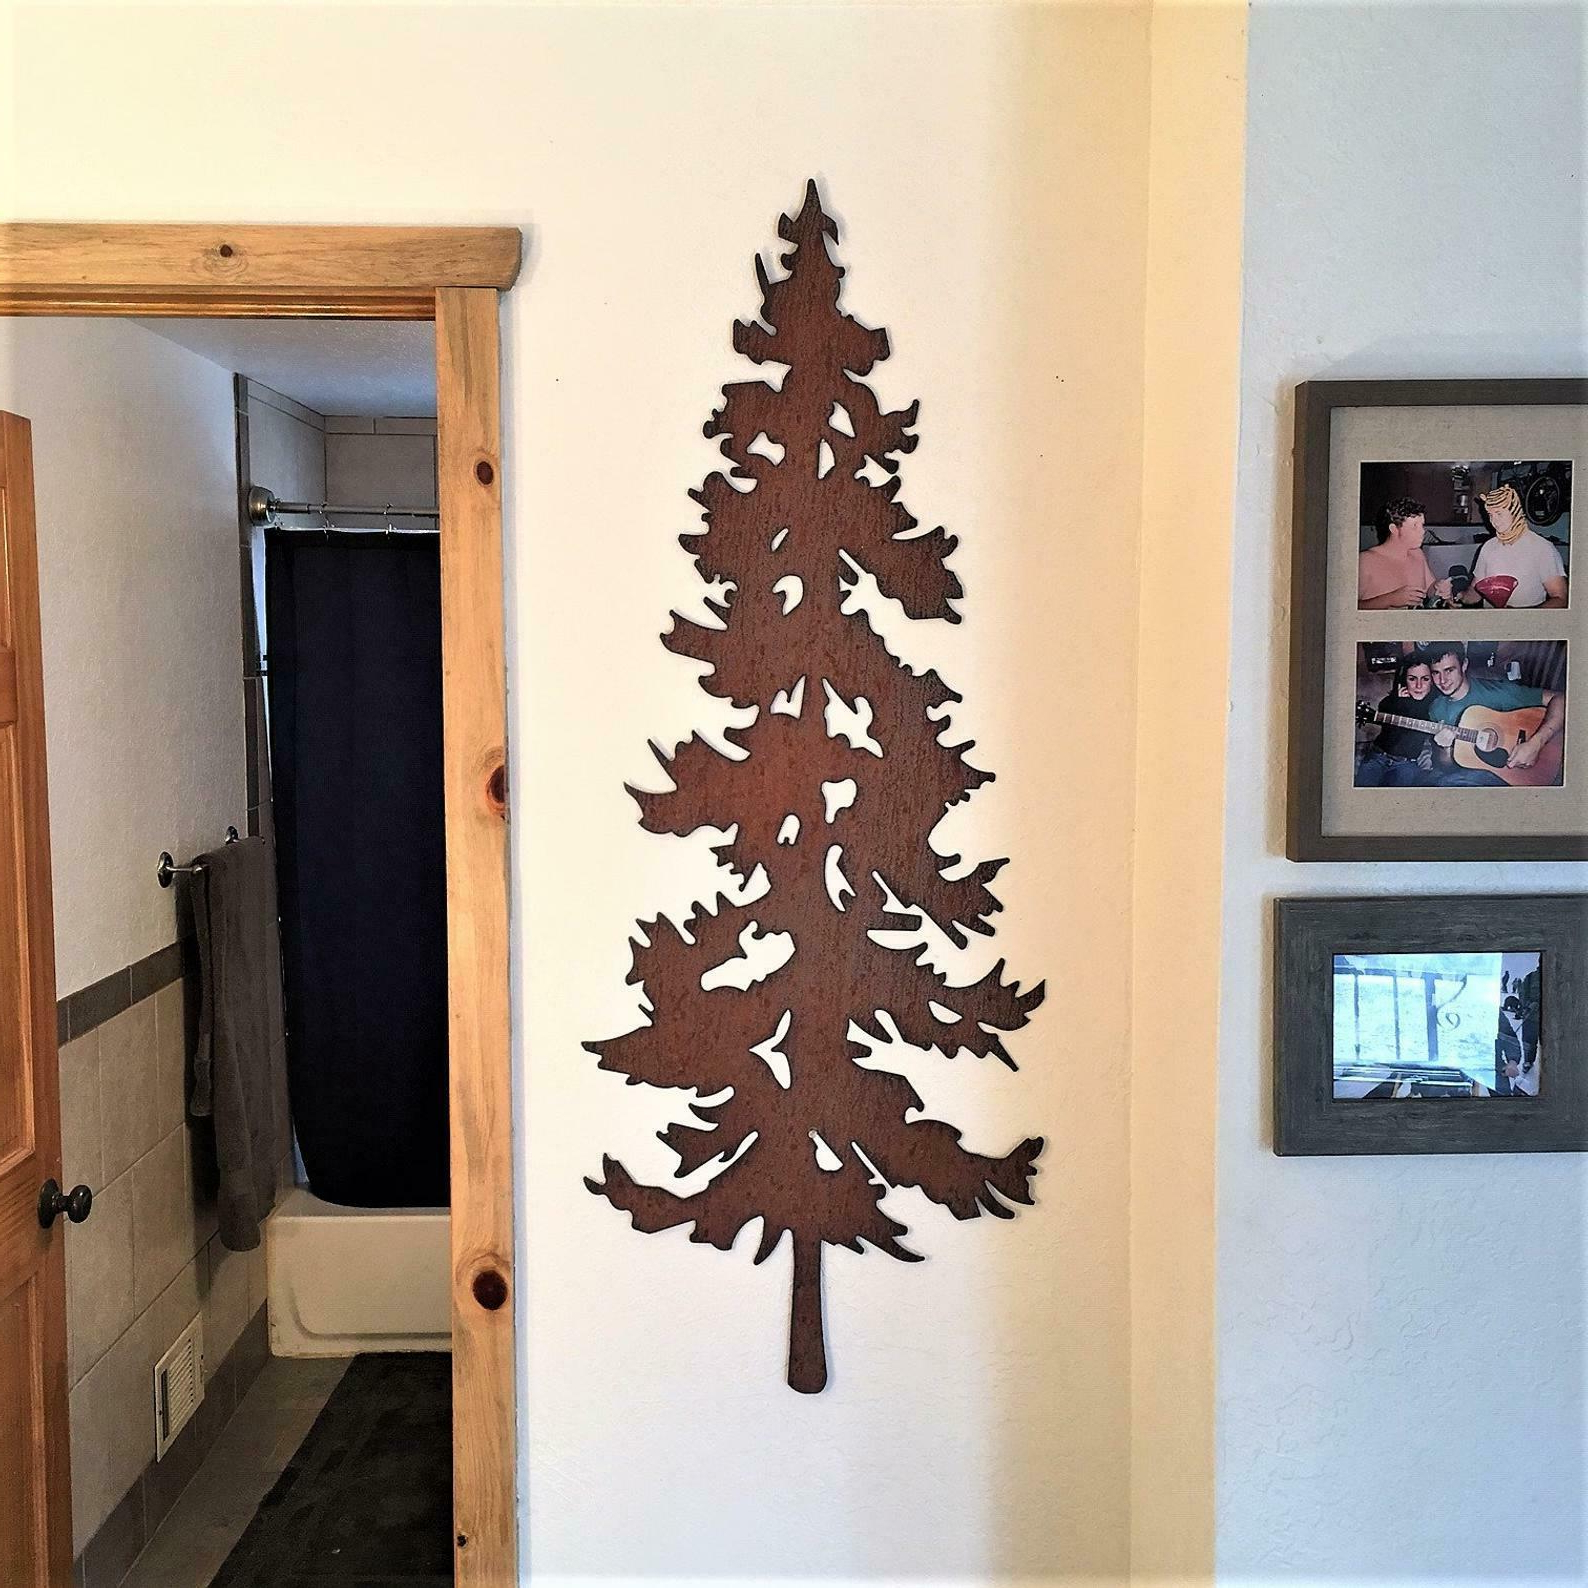 Steel Evergreen Tree Metal Wall Art Brown Copper Leaves Rustic Nature Home Decor Within Well Liked Copper Rustic Iron Wall Décor (View 18 of 20)